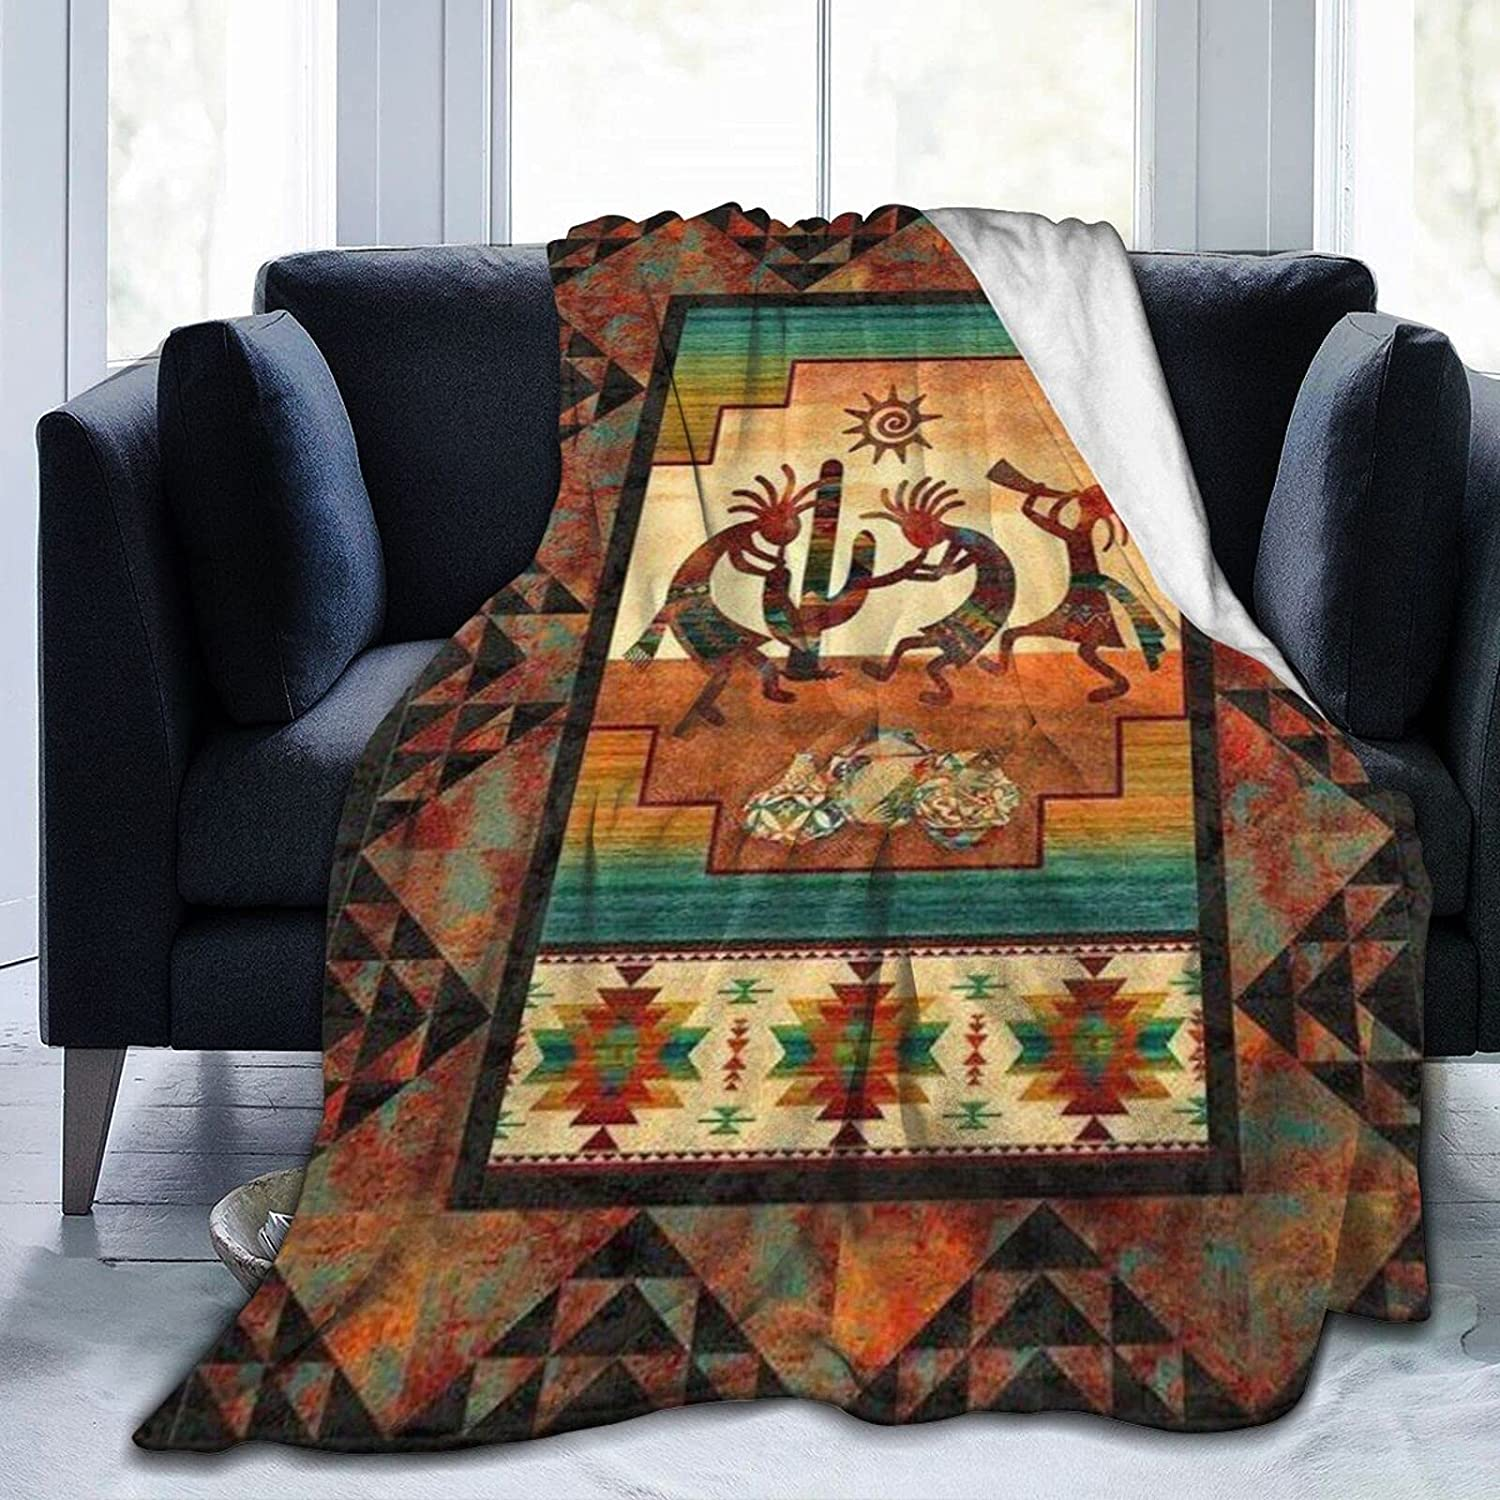 Inidan Native American Our shop OFFers the best service Kokopelli Ethnic Fl Pattern Aztec Flannel It is very popular